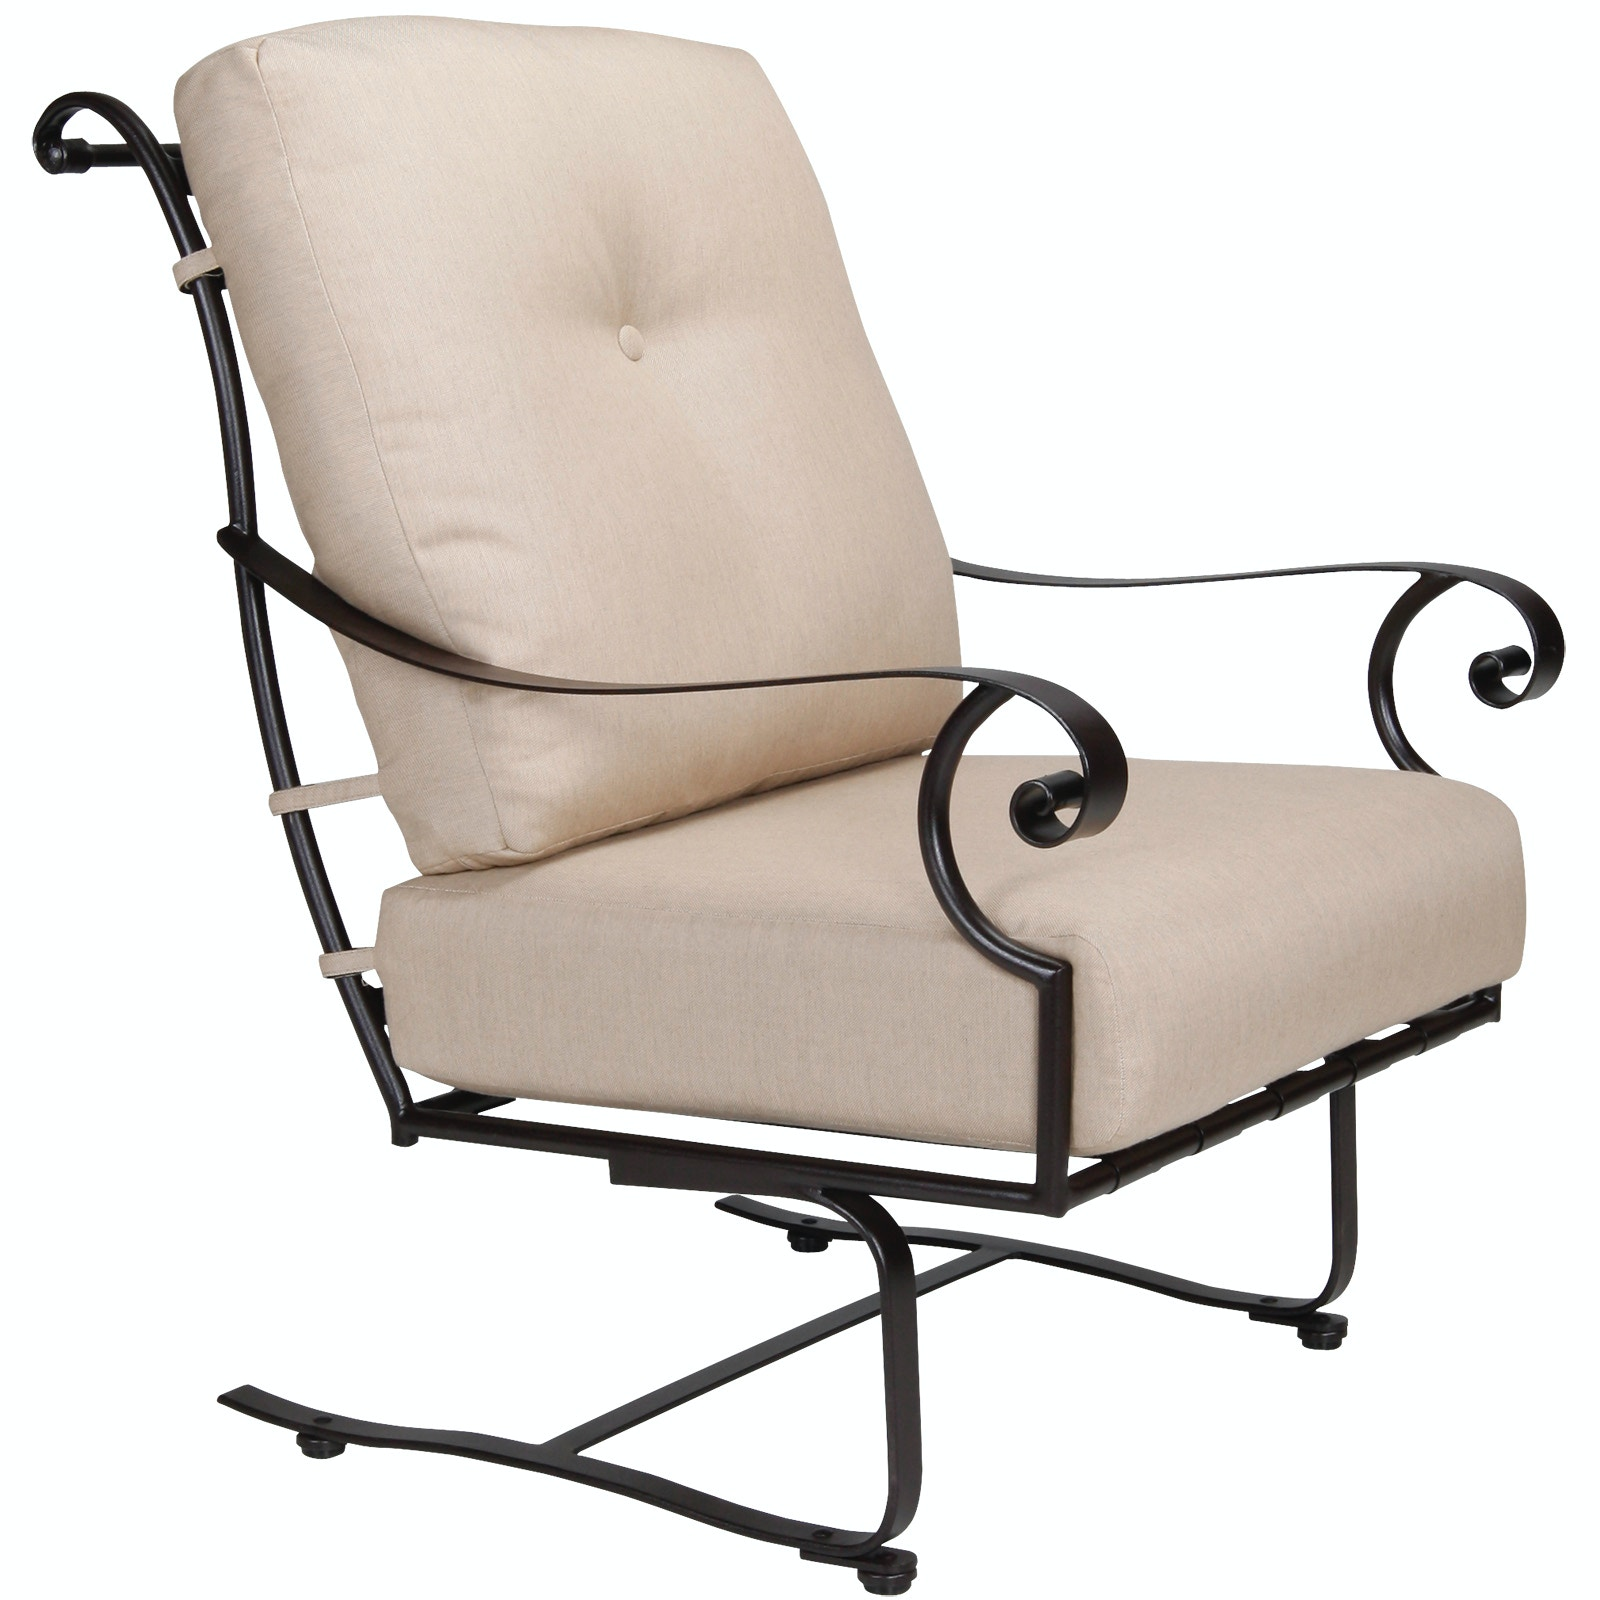 OW Lee Furniture St. Charles Spring Base Lounge Chair Owlee Furniture  26125 SB